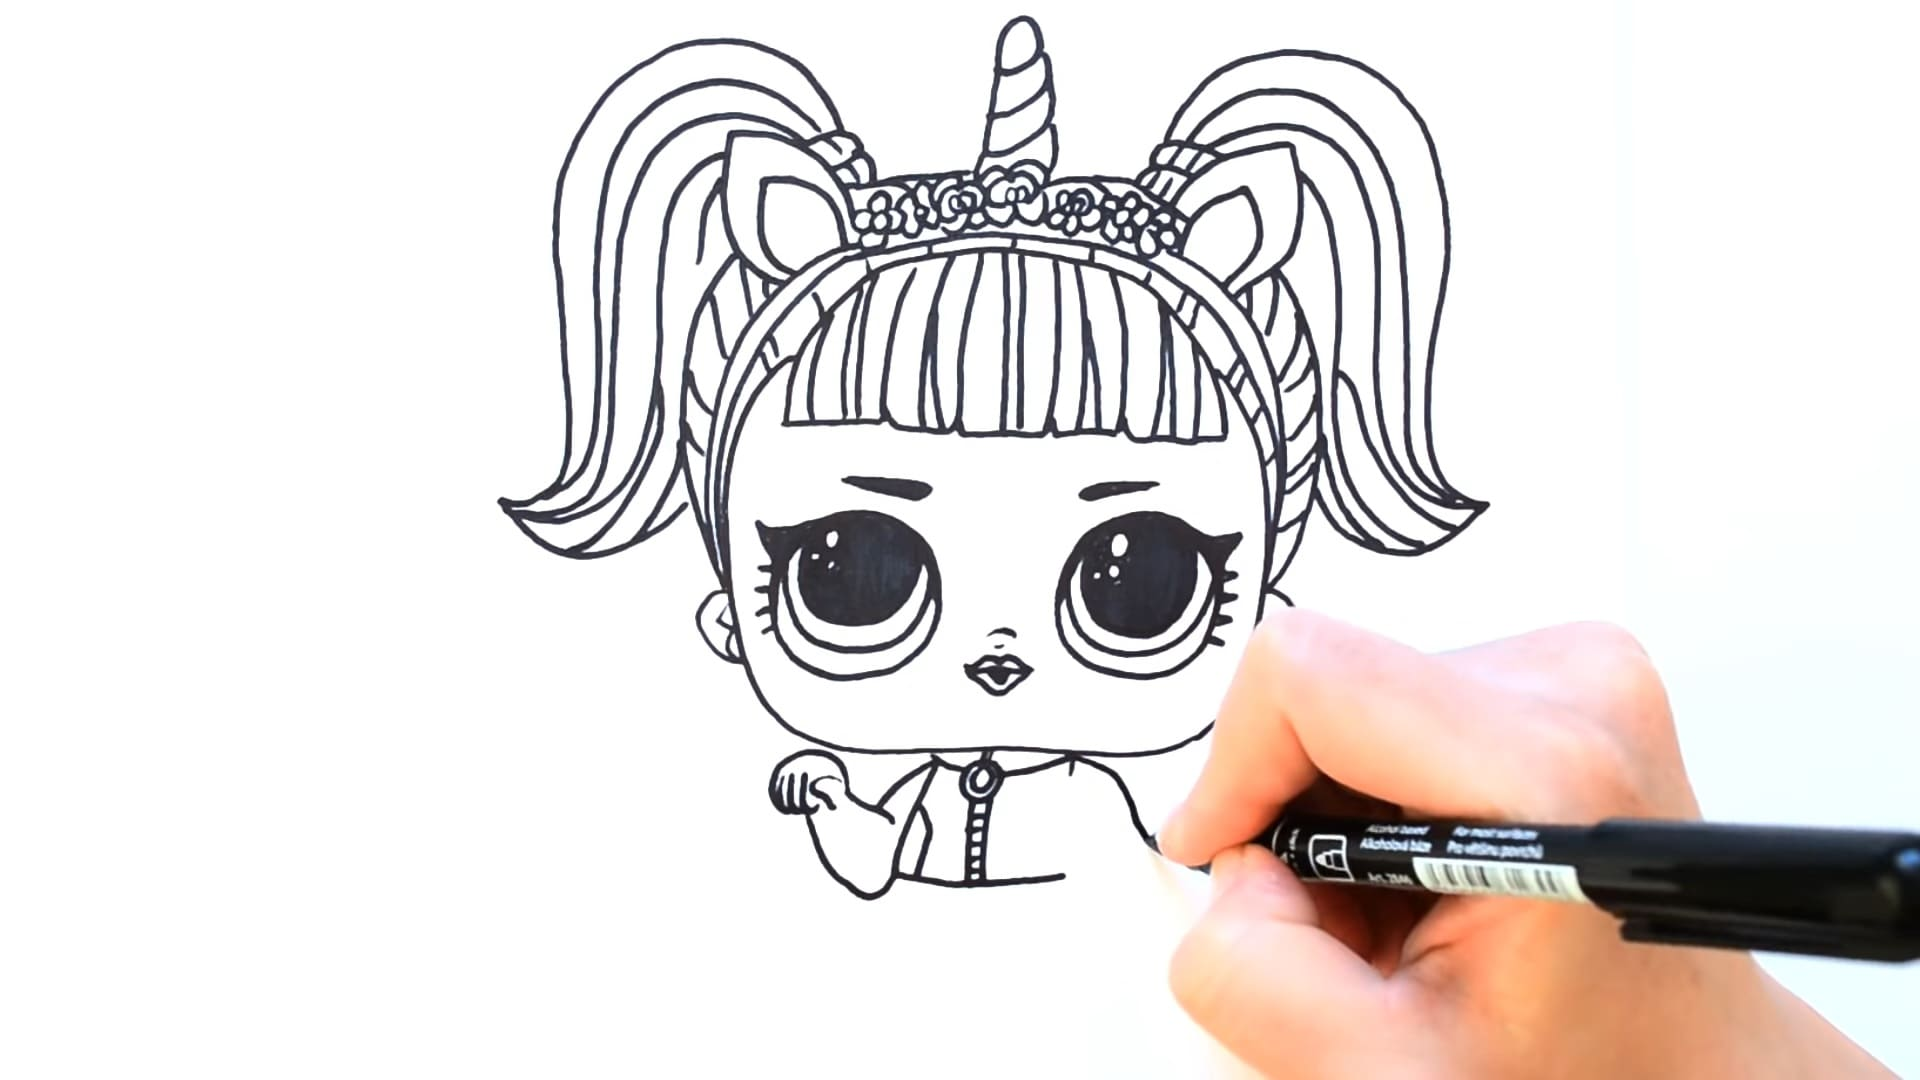 How to draw LOL doll with pencil according to instructions fast and easy